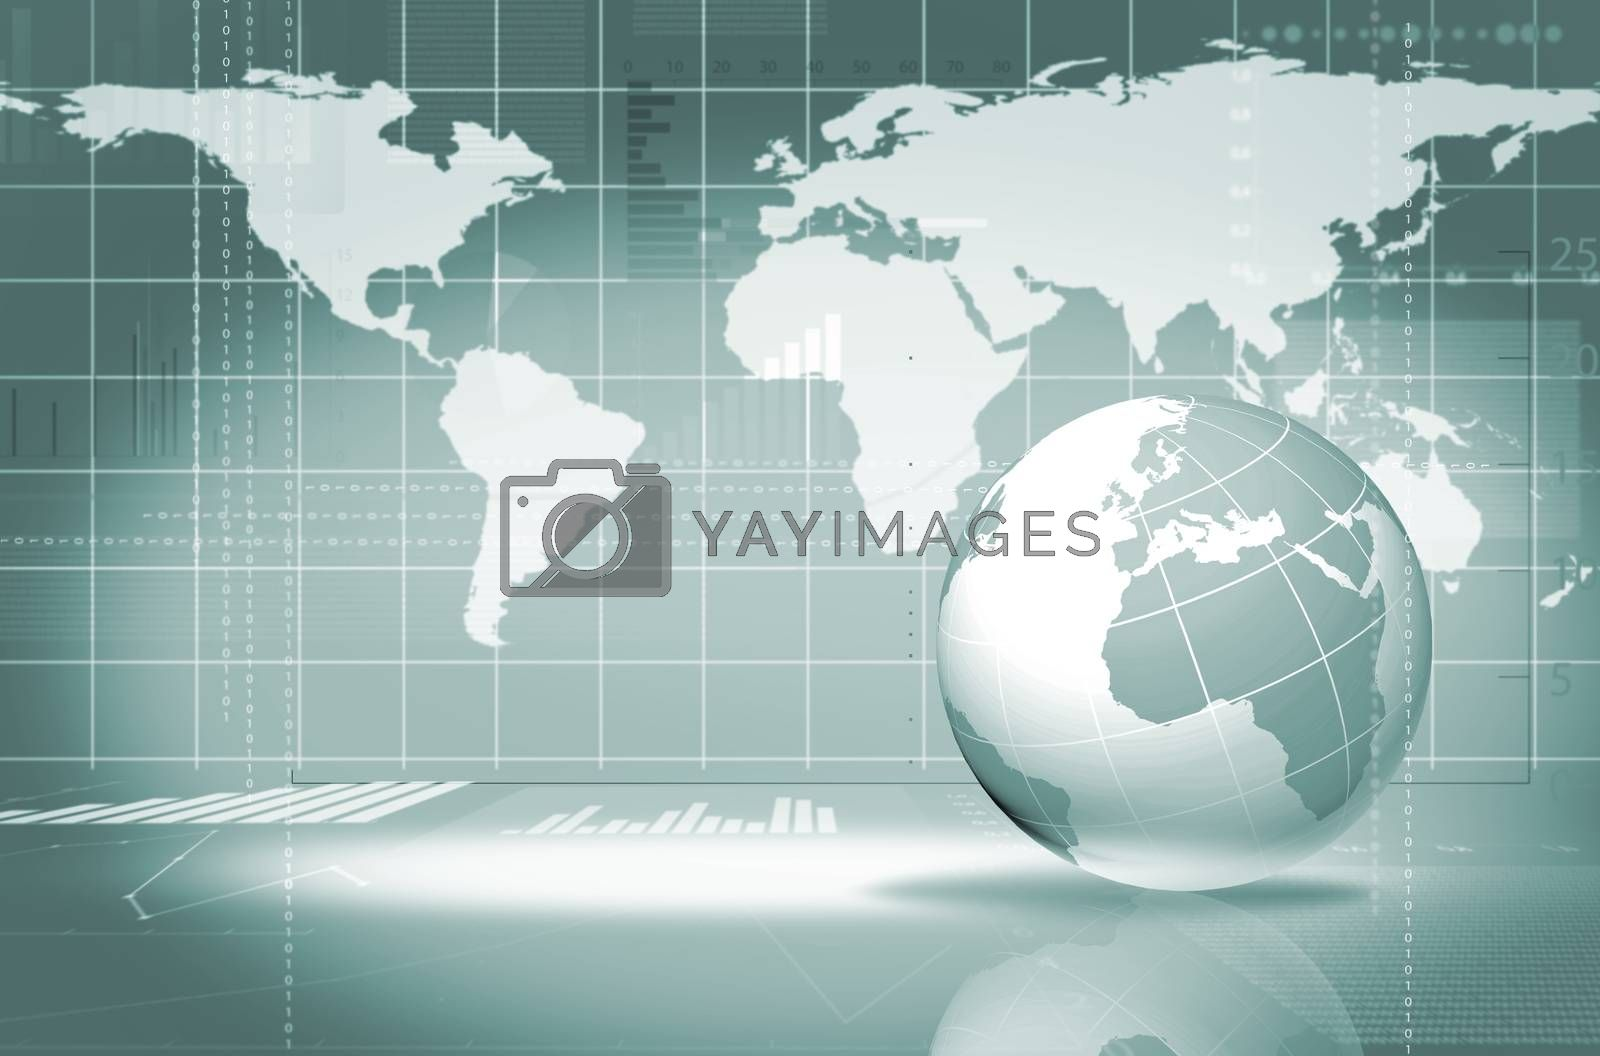 Royalty free image of abstract business background by adam121